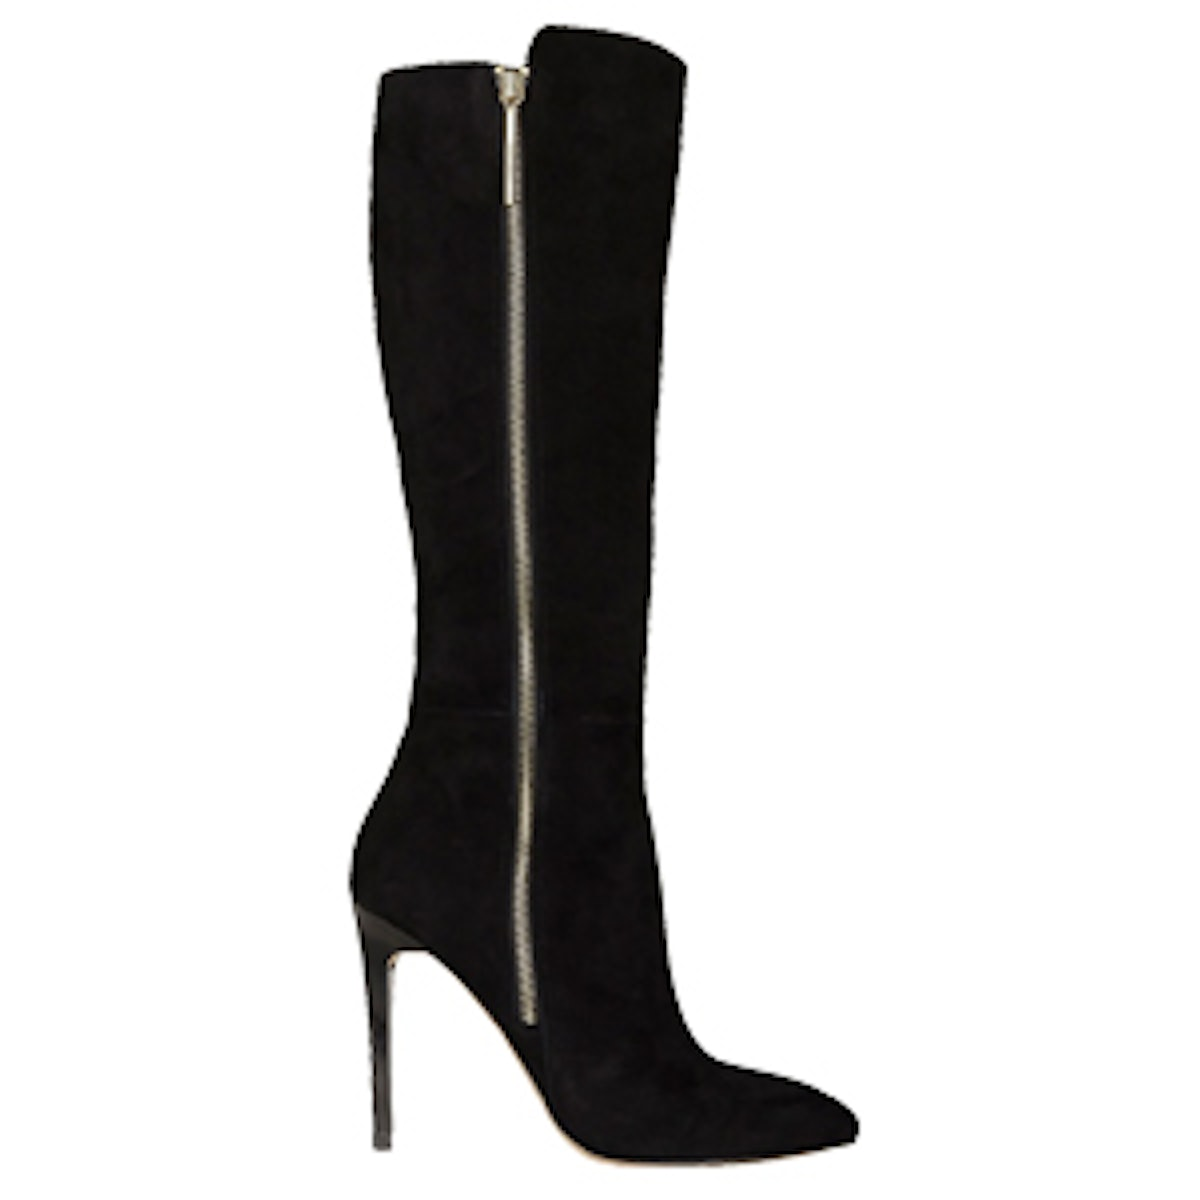 Molly Suede Knee-High Boots